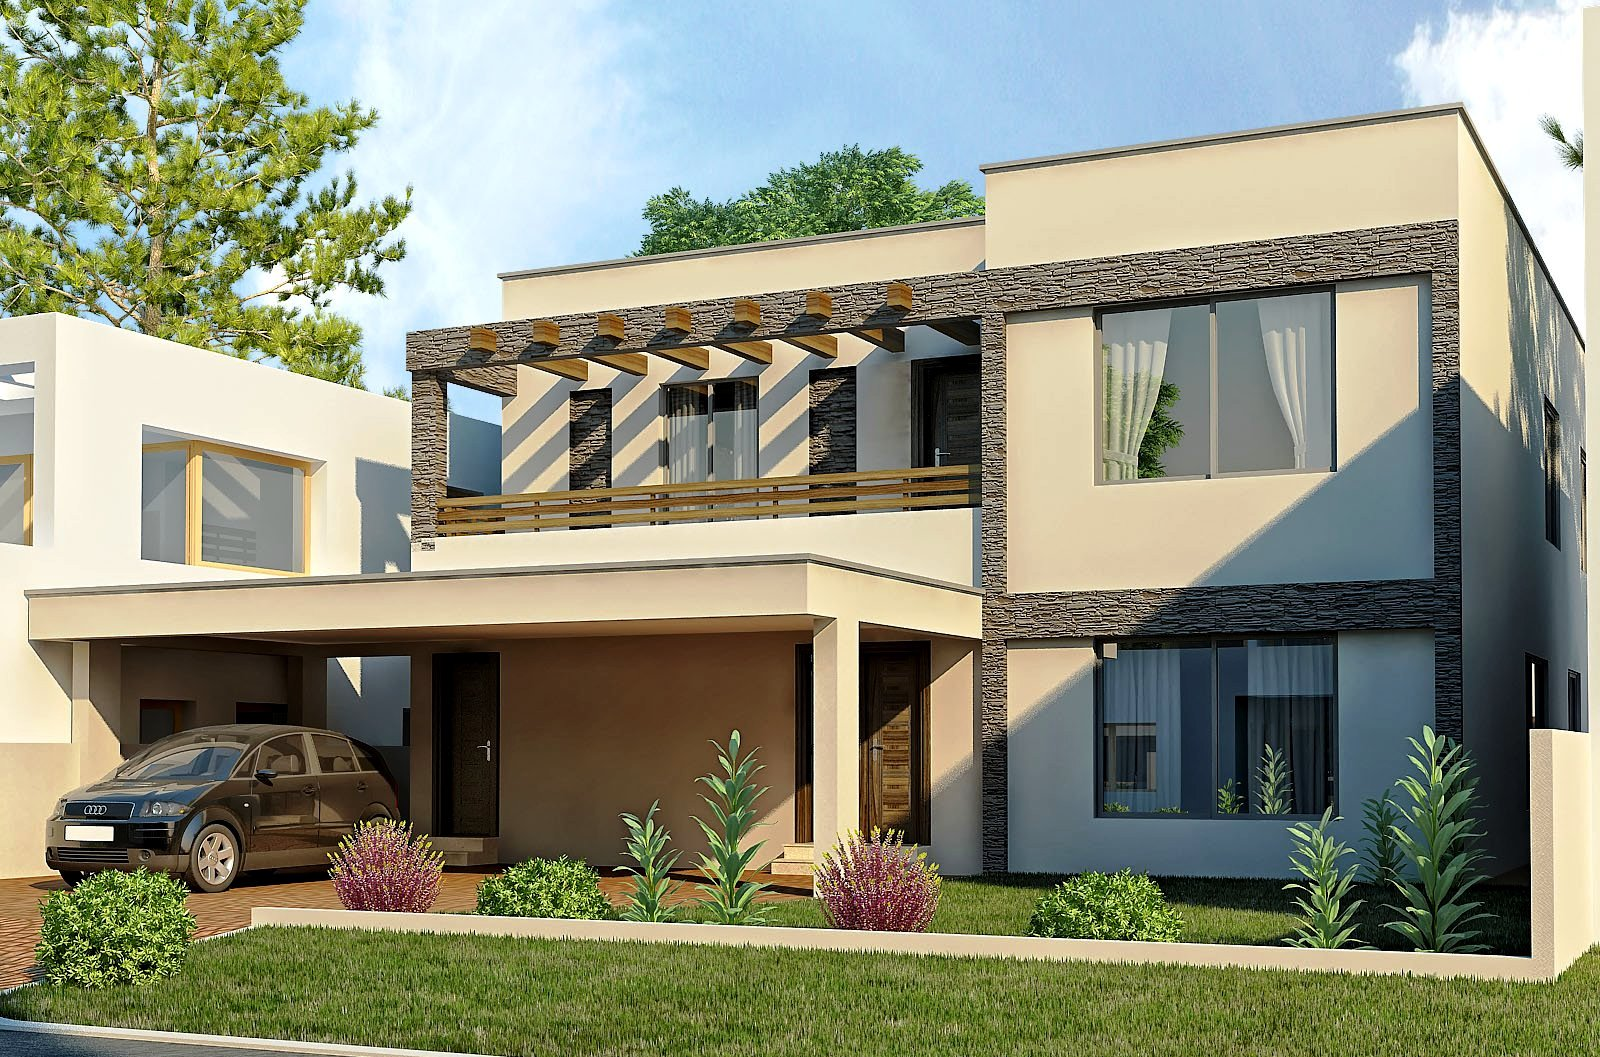 New home designs latest modern homes exterior designs views for Front exterior home designs